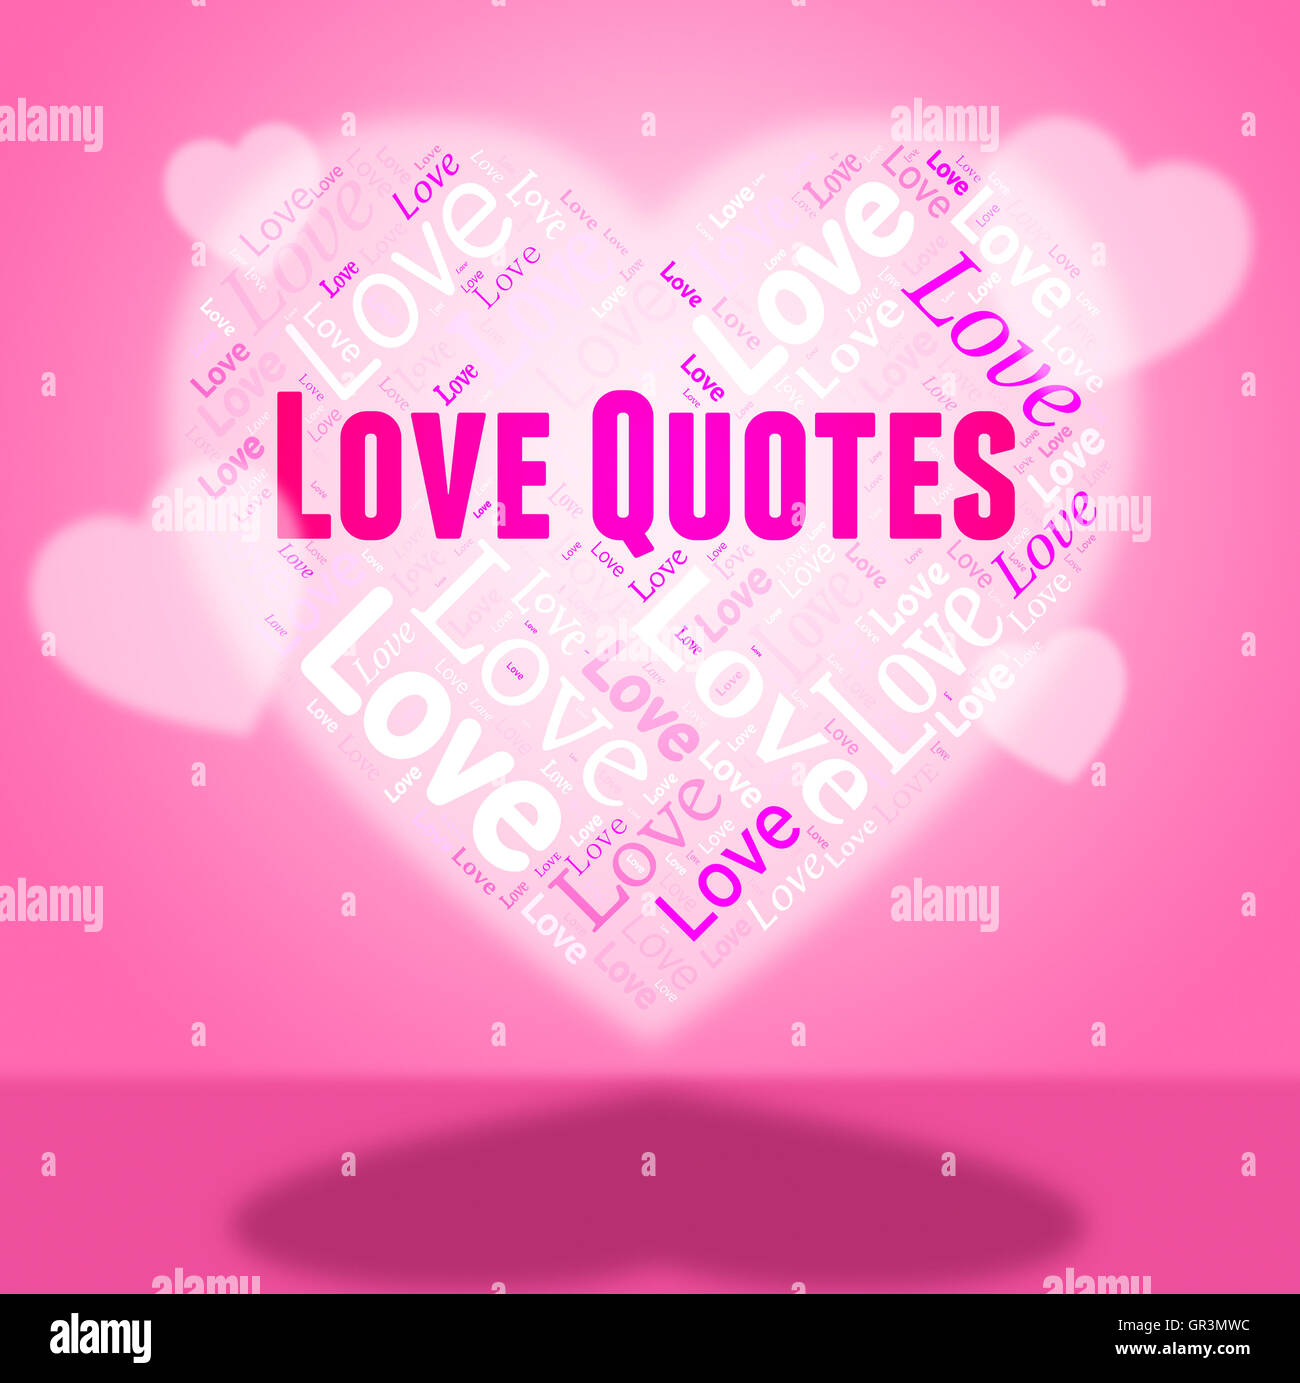 Inspiration Love Quotes Love Quotes Representing Comment Inspiration And Passionate Stock